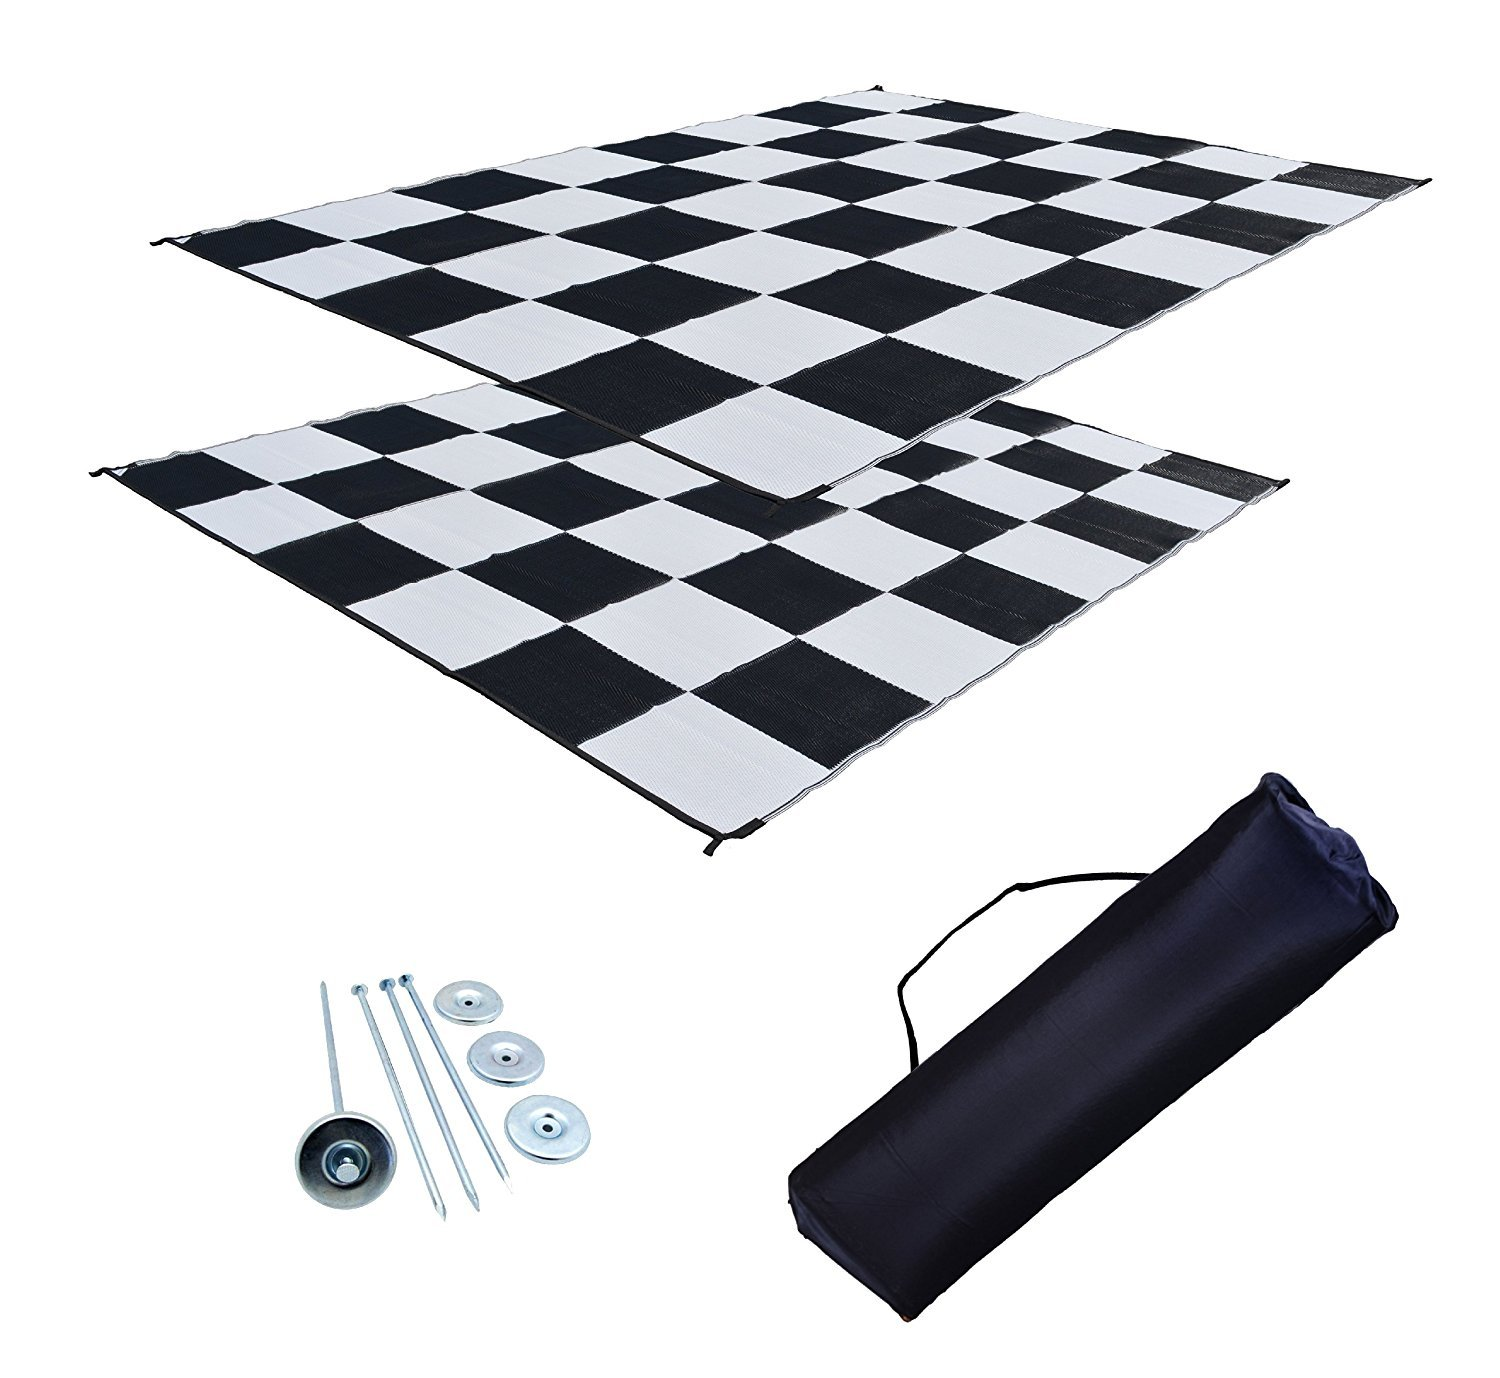 RV Patio Mat Awning Mat Outdoor Leisure Mat 9x18 Checkered Flag Complete Kit by EZ Travel Mats